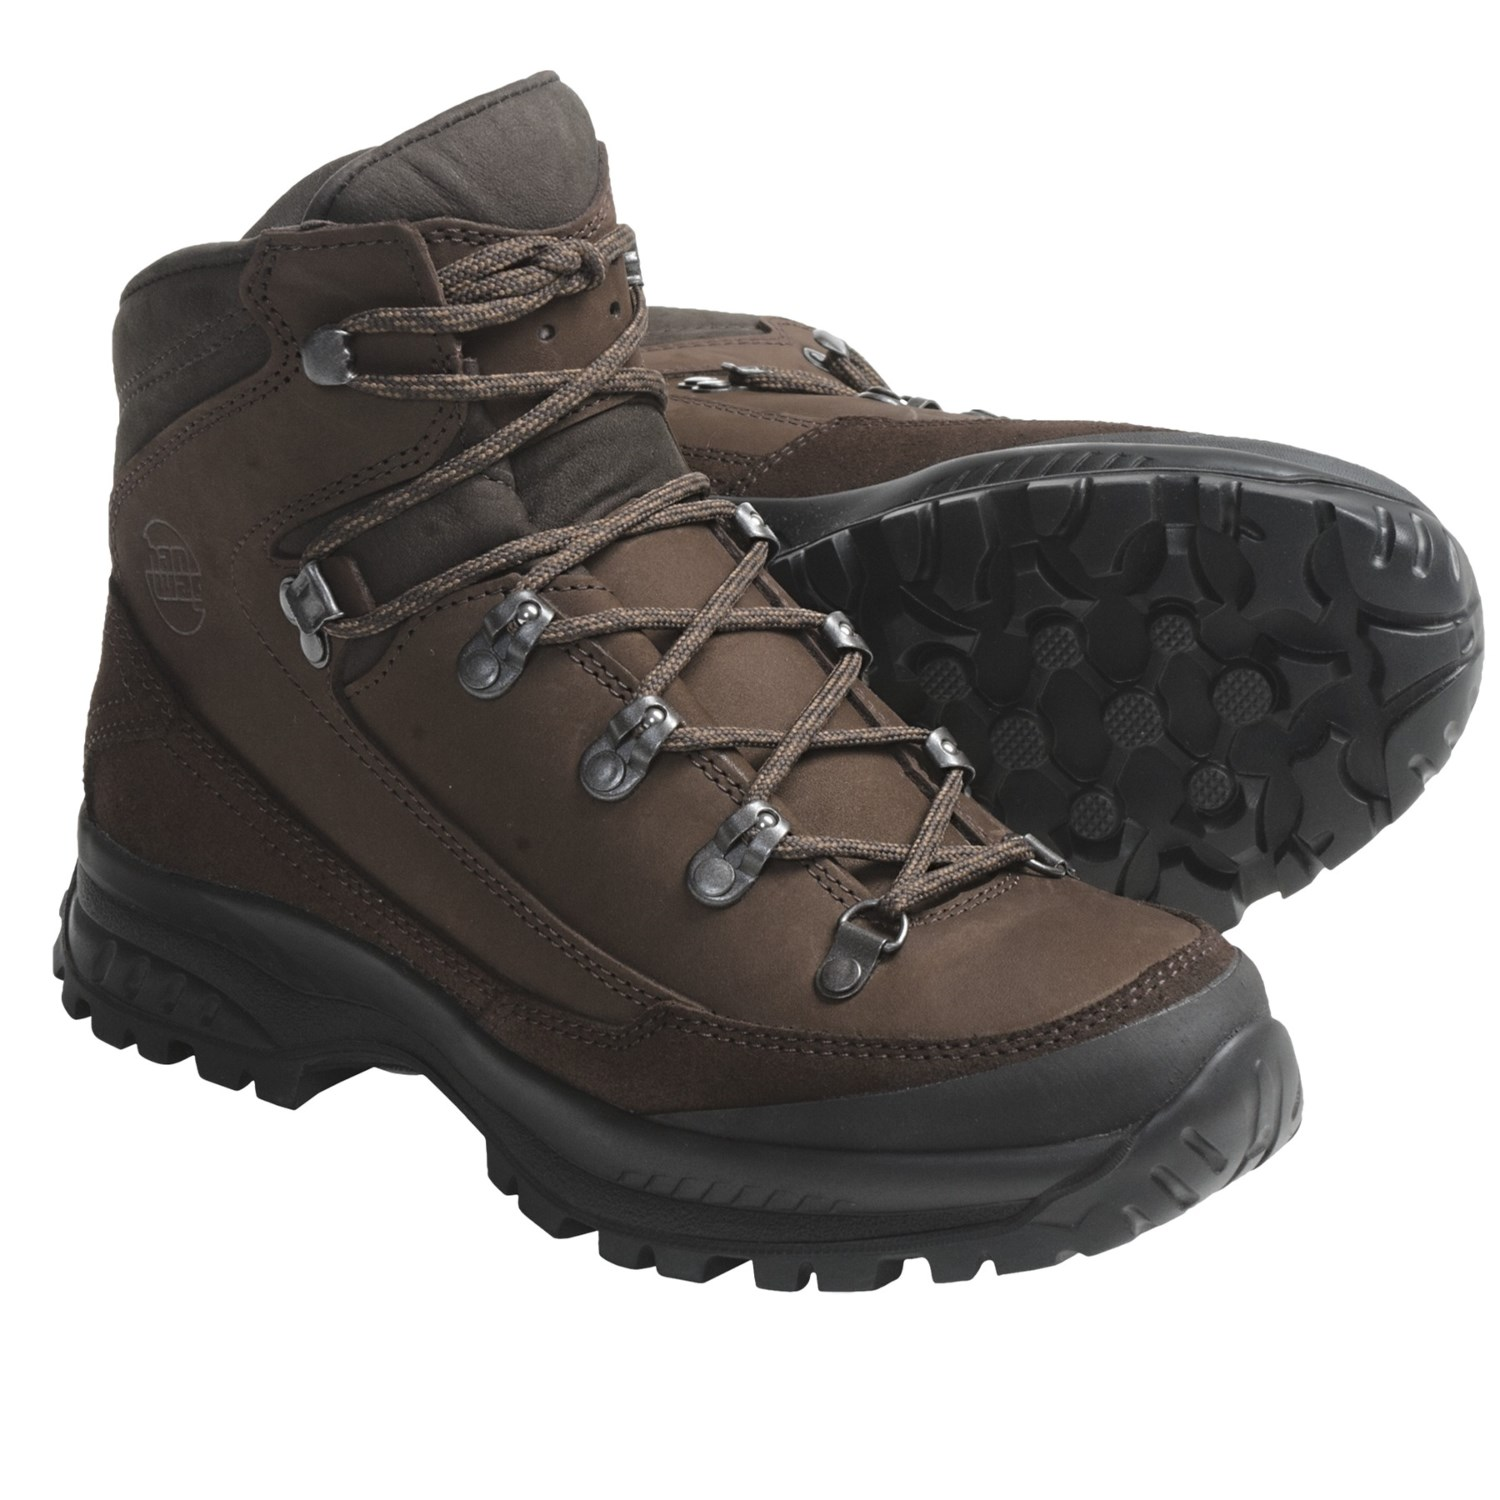 Canyon Futura Lady Hiking Boots - Leather (For Women) in Dark Brown